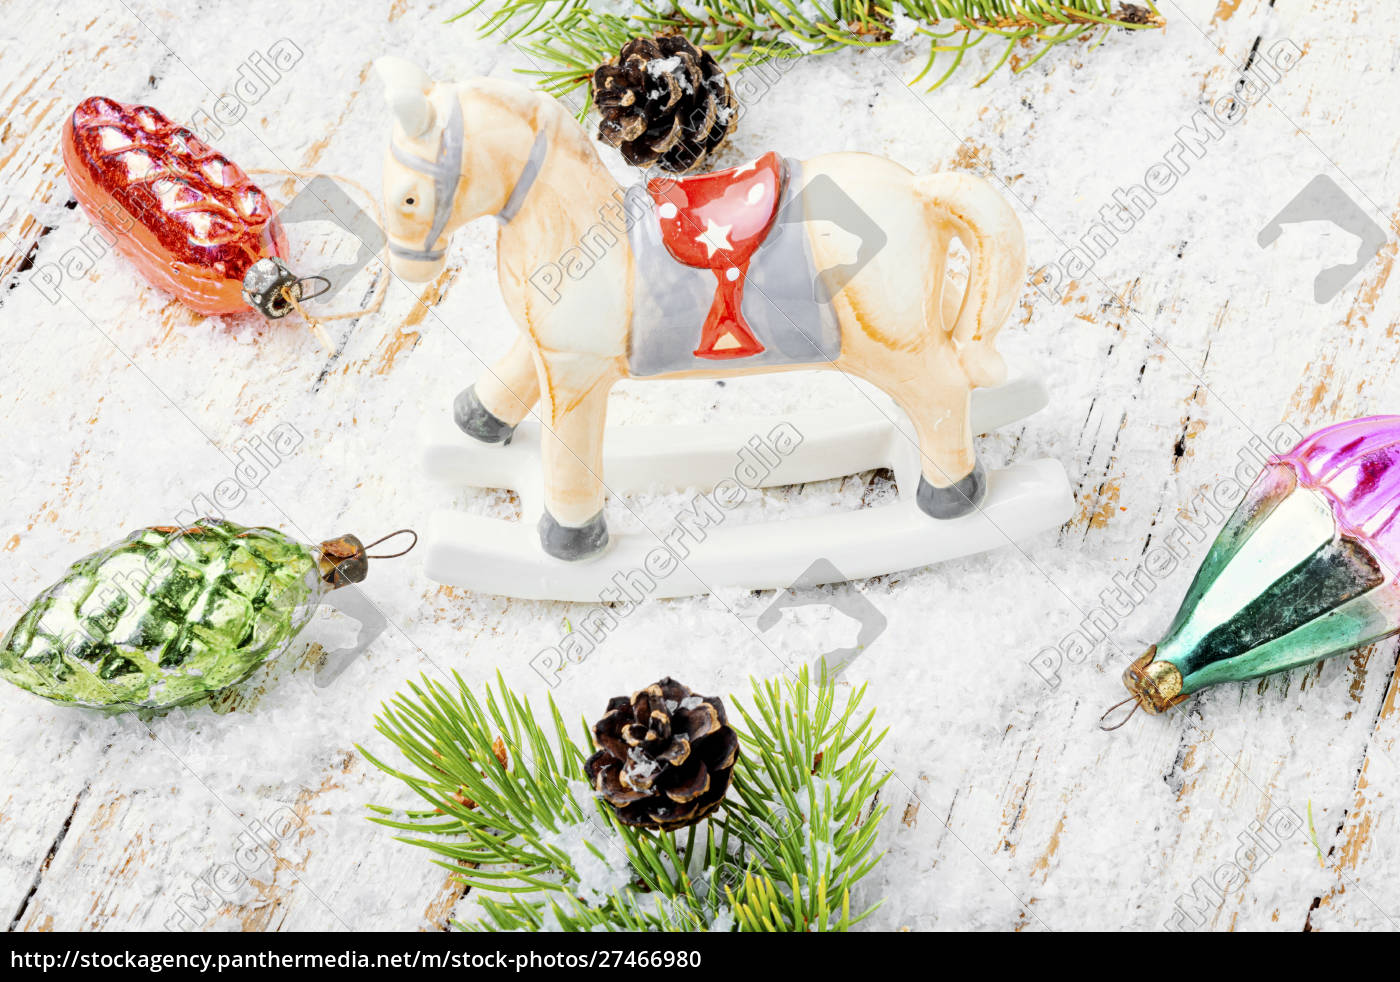 childrens, toy, horse - 27466980